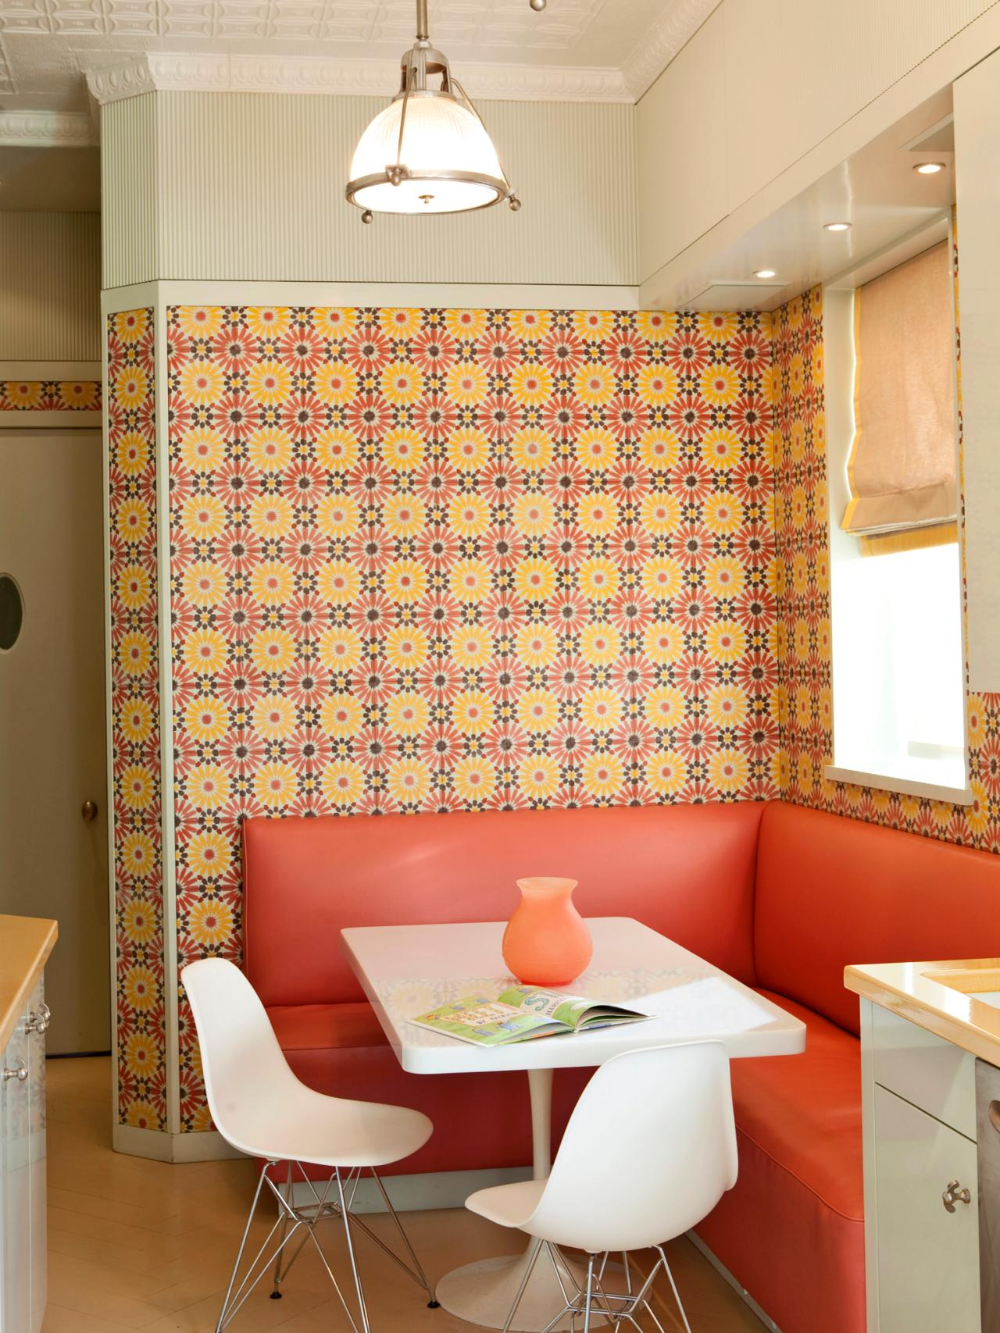 Midcentury Modern Dining Room With Floral Wallpaper Mutfak